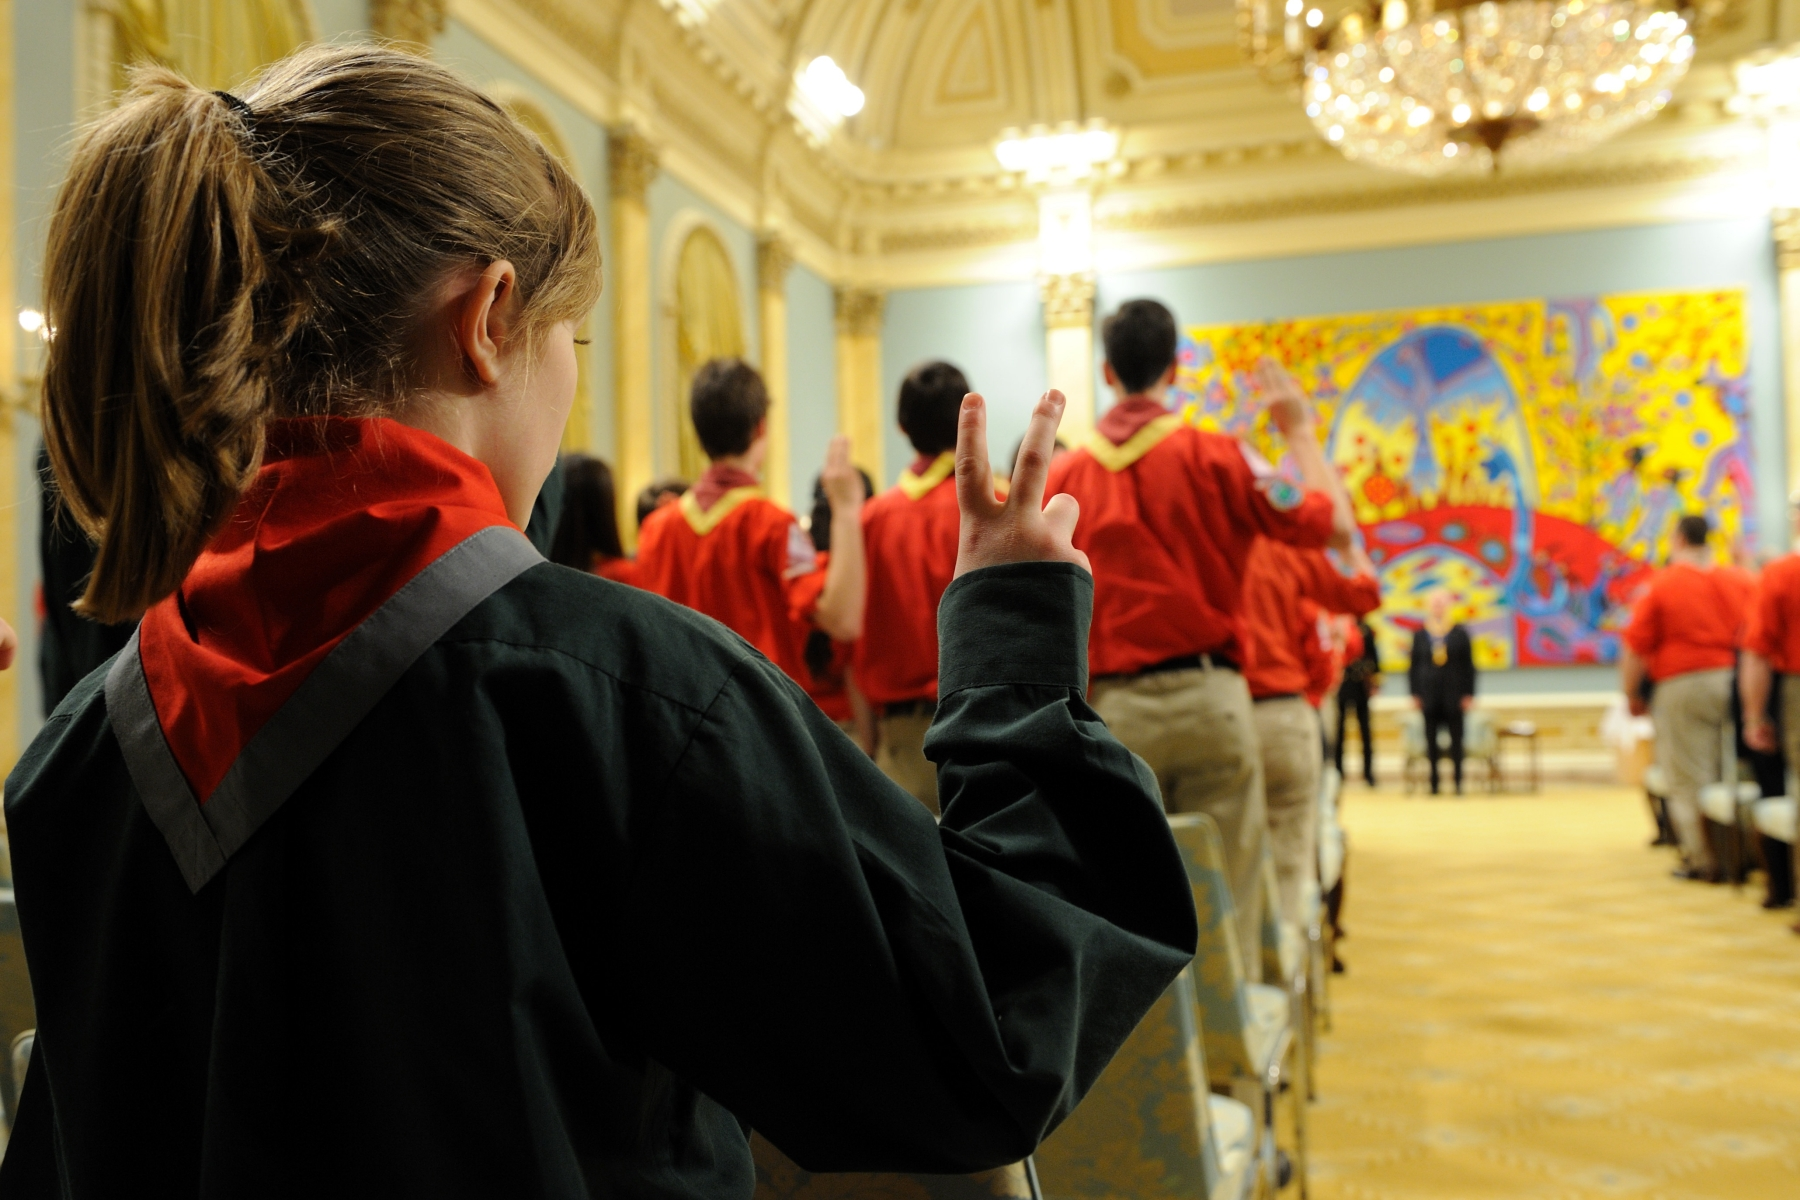 As chief scout of the Association des scouts du Canada, the Governor General presented decorations to four groups of young people, aged 12 to 17. He also recognized 39 adult volunteers and benefactors who have made a significant contribution to the development of Canadian Francophone Scouting.